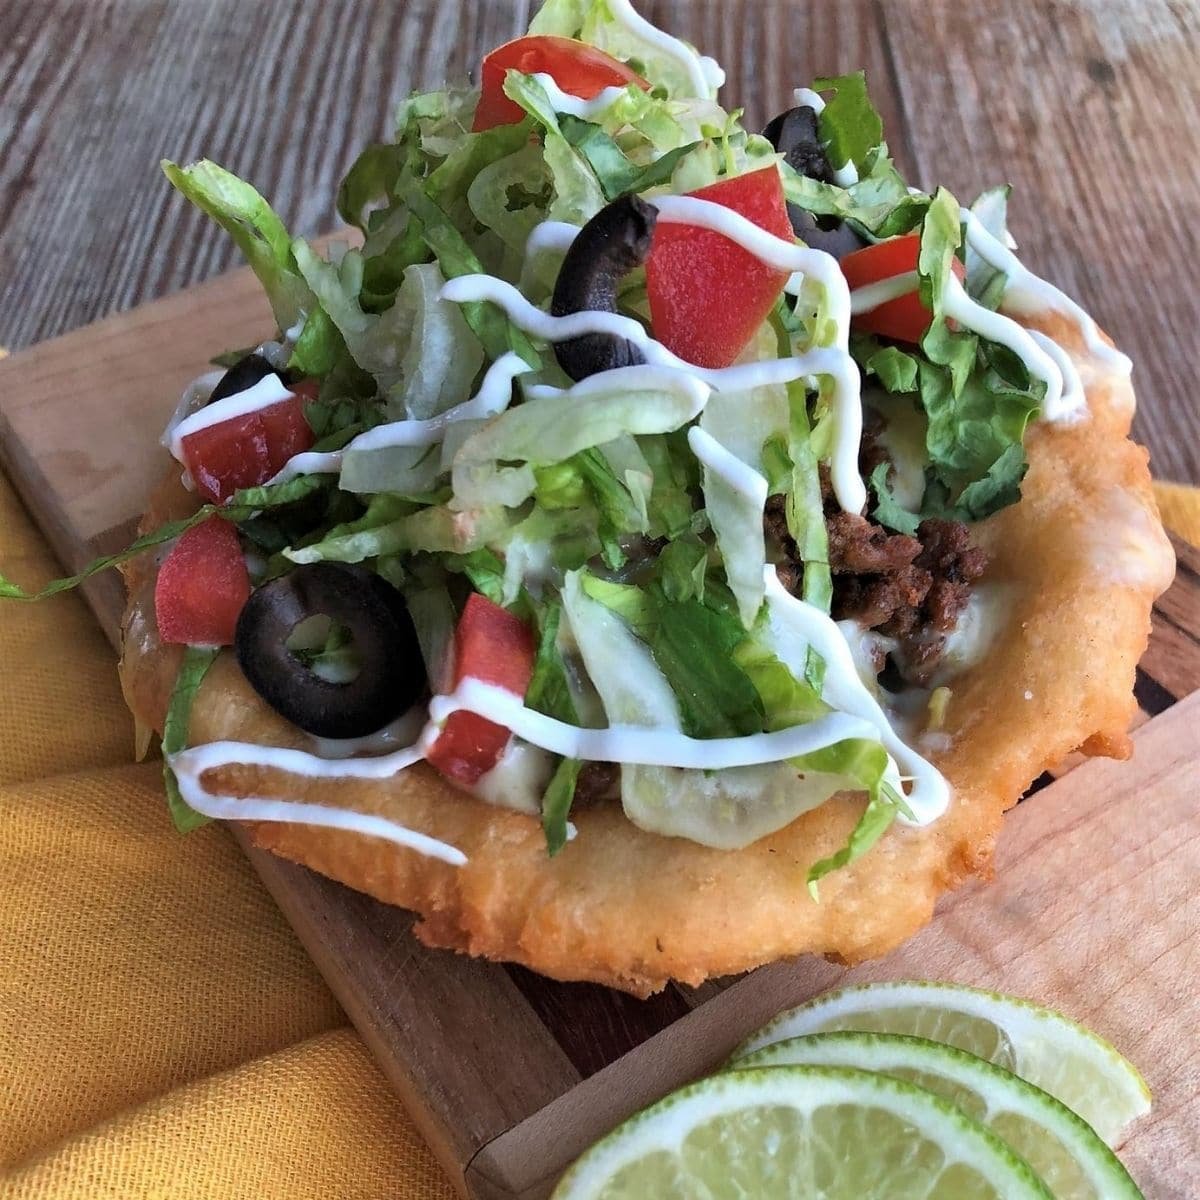 Fry bread taco finished ready to eat.